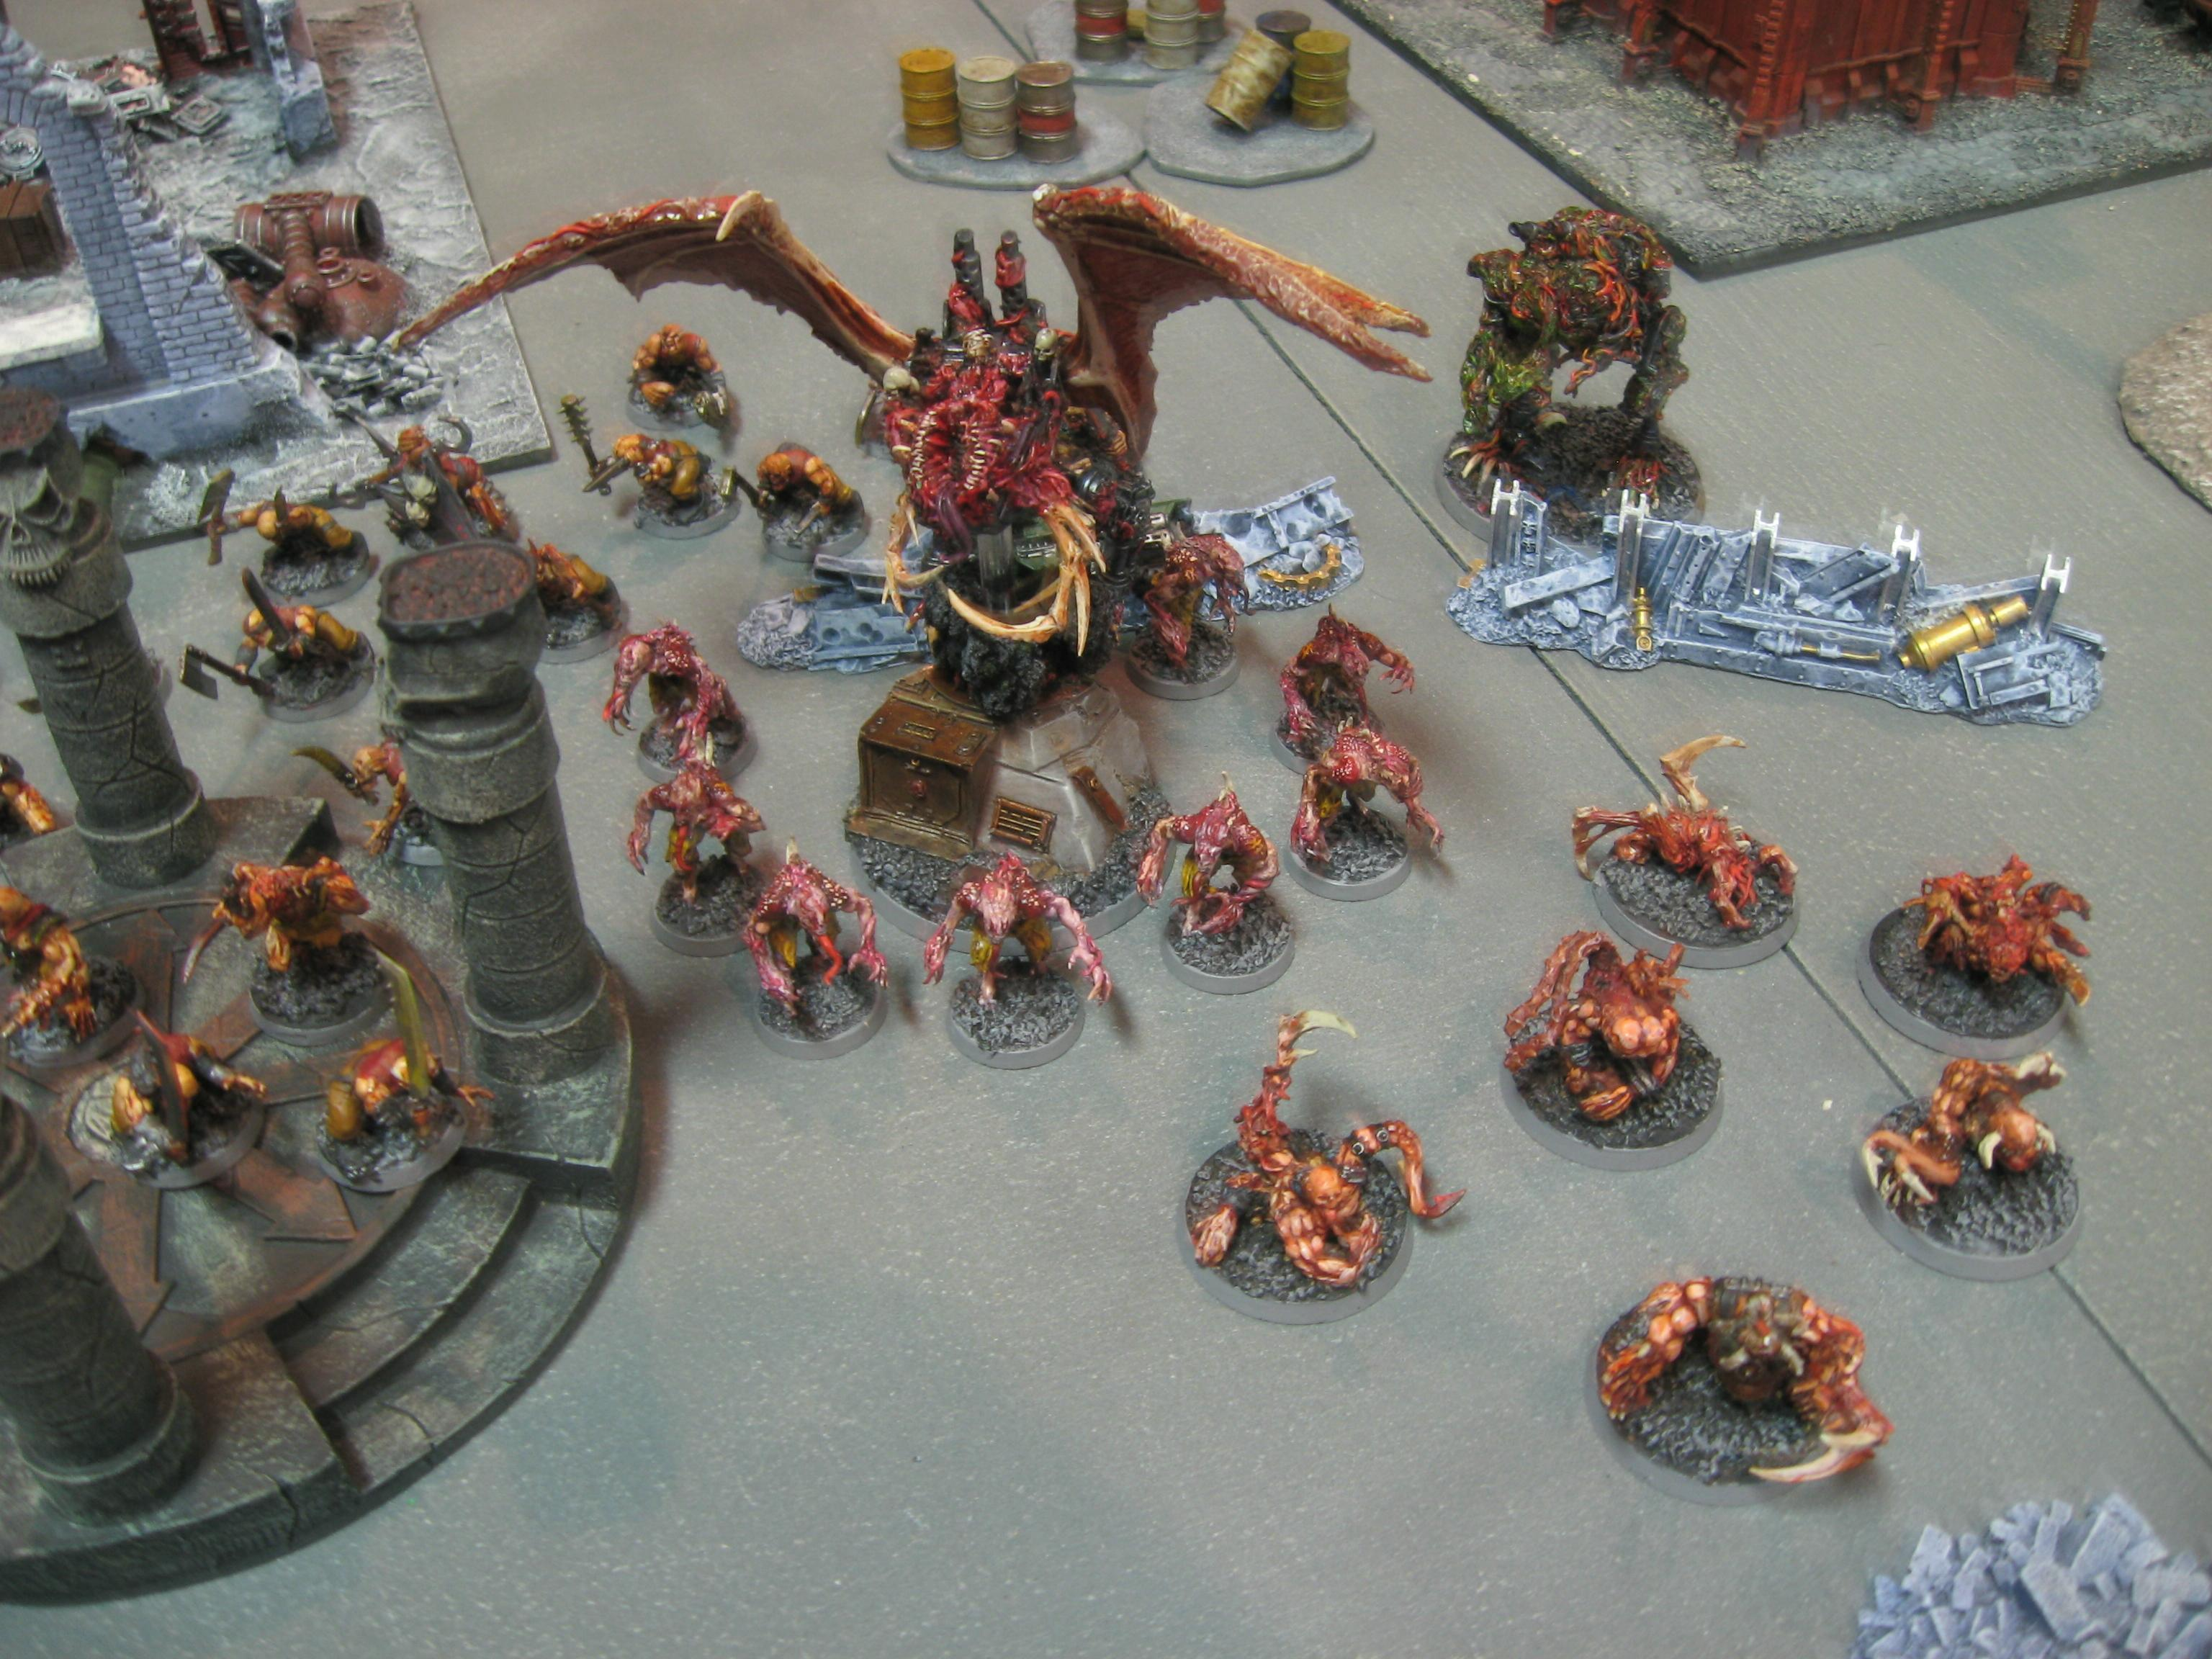 Army, Bloodletters, Bloodthirster, Chaos Daemons, Conversion, Daemons, Fiends